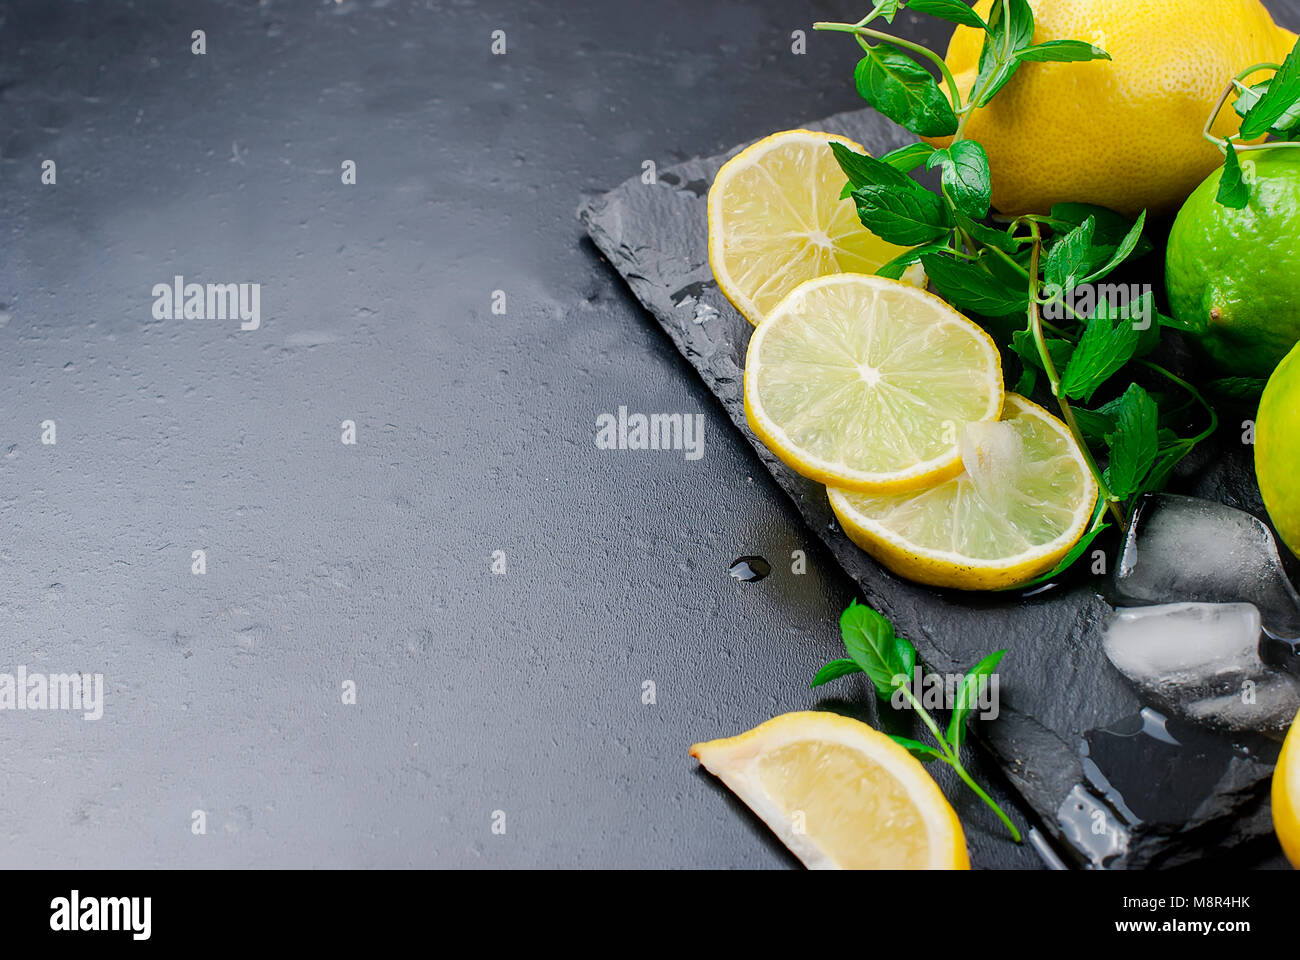 Top view of ice cubes and mojito cocktail ingredients on black slate board, cocktail drinks concept - Stock Image